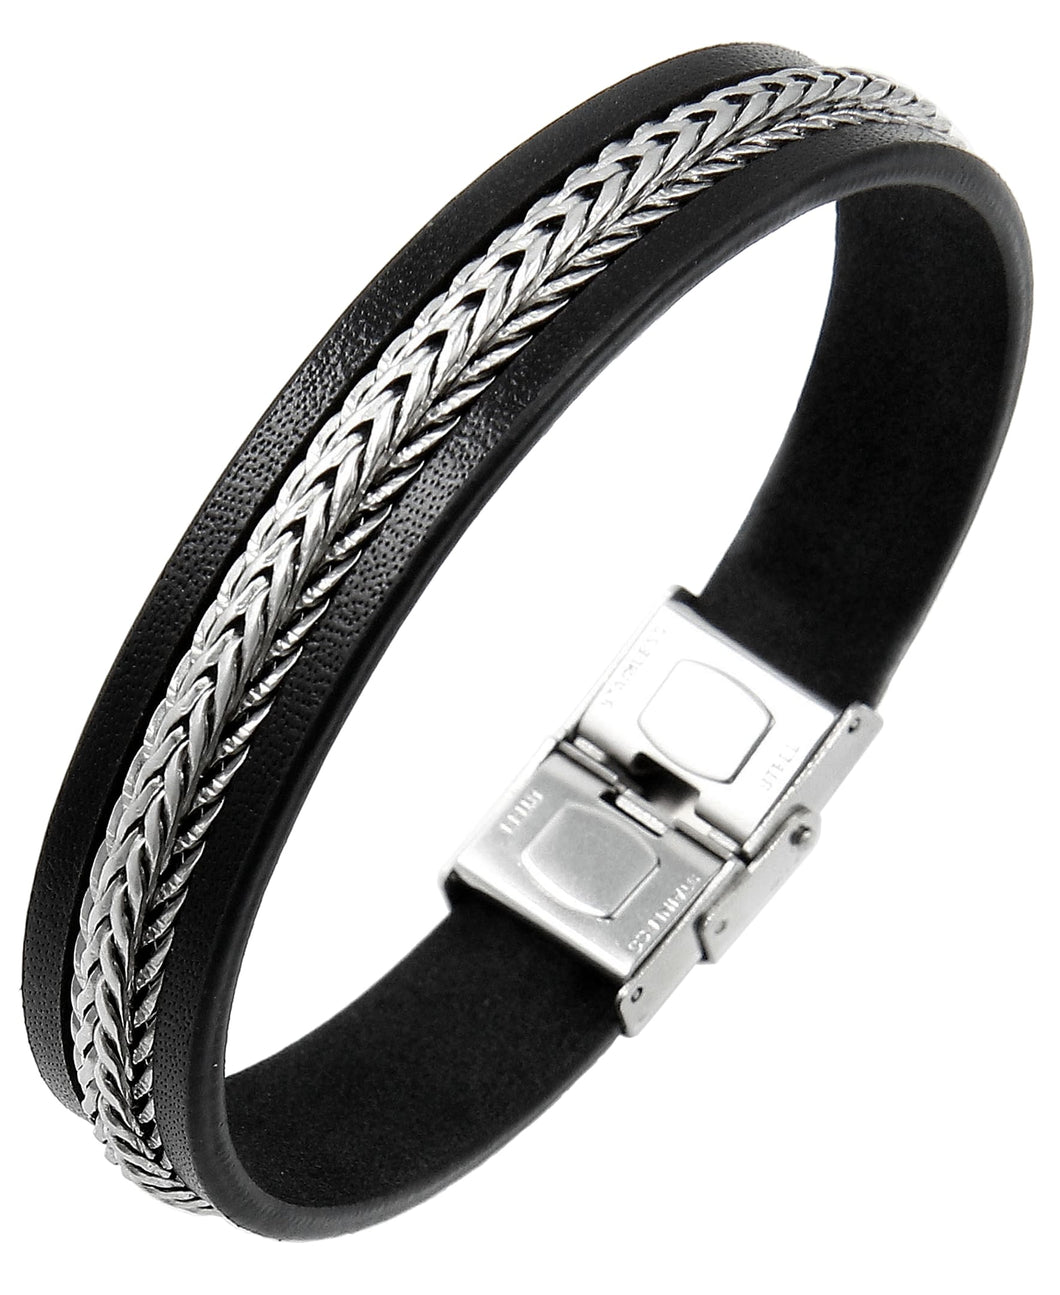 Sutton Stainless Steel Leather Bracelet with Chain Detail